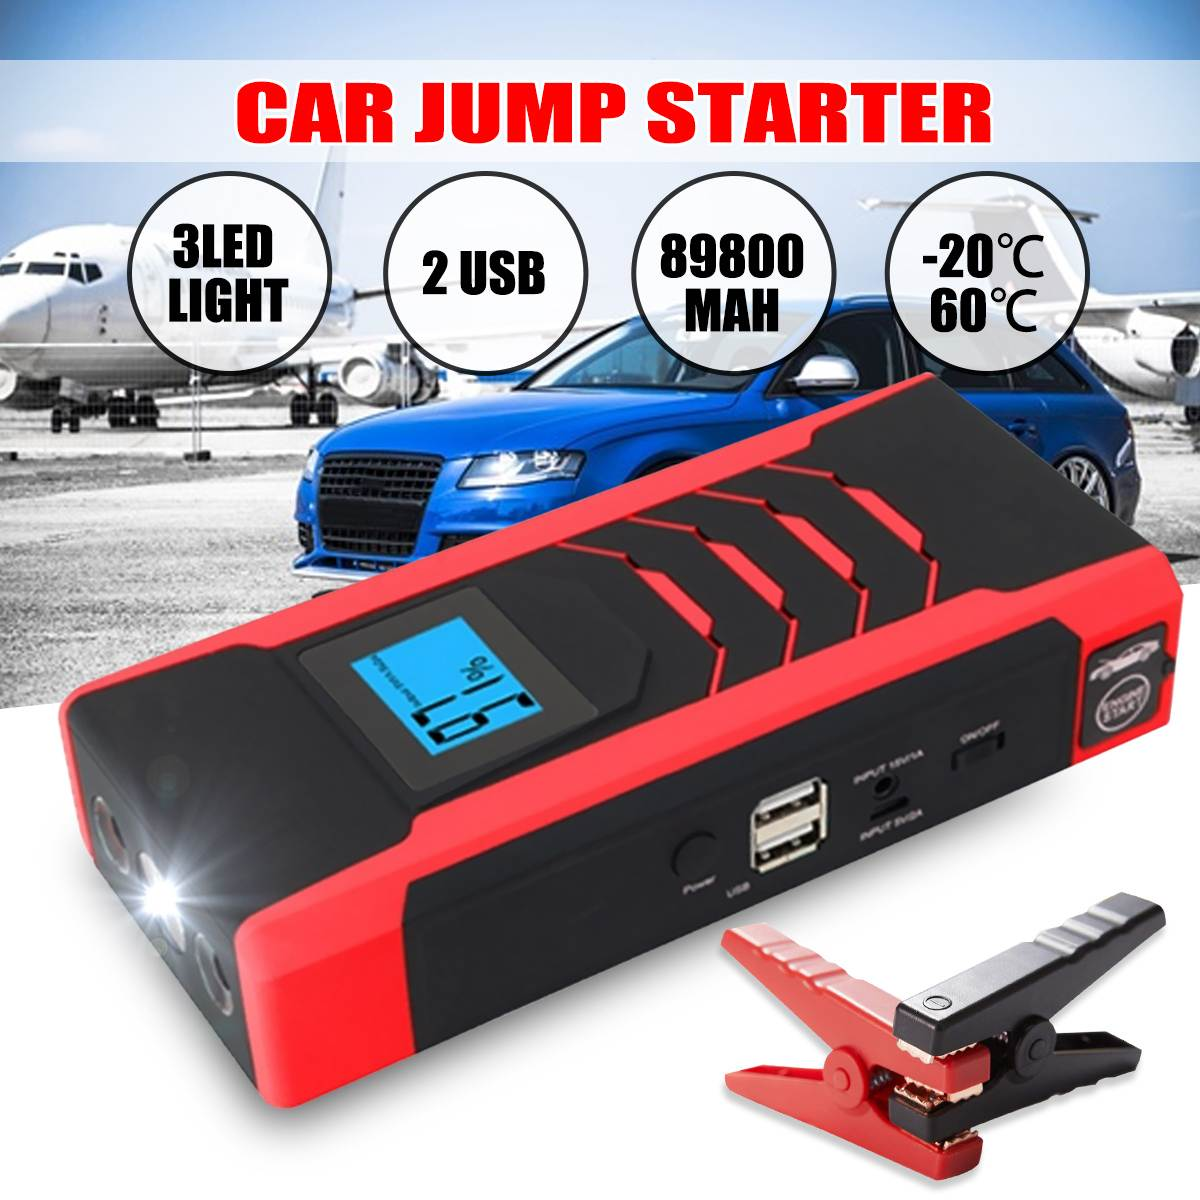 12V 800A Emergency Car Jump Starter Power Bank Portable Starting Device Booster High Power Car Starter For Car Battery Charger